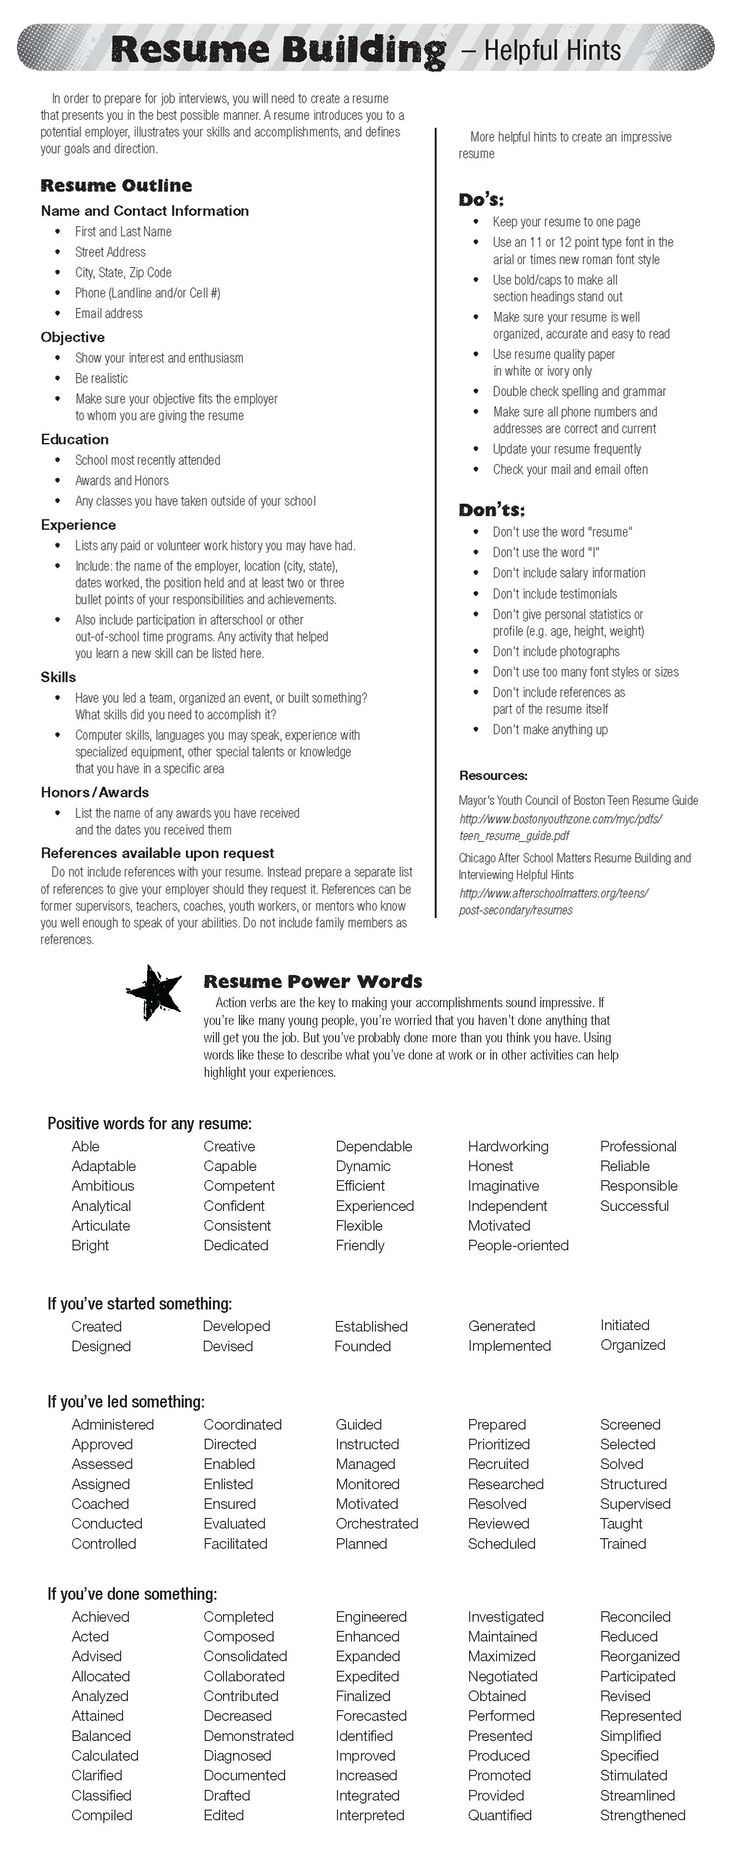 Opposenewapstandardsus  Seductive  Ideas About Resume On Pinterest  Cv Format Resume Cv And  With Foxy  Ideas About Resume On Pinterest  Cv Format Resume Cv And Resume Templates With Astounding What To Name Resume File Also Picture Resume In Addition Certifications For Resume And Personal Banker Resume Examples As Well As Building A Great Resume Additionally Quality Manager Resume From Pinterestcom With Opposenewapstandardsus  Foxy  Ideas About Resume On Pinterest  Cv Format Resume Cv And  With Astounding  Ideas About Resume On Pinterest  Cv Format Resume Cv And Resume Templates And Seductive What To Name Resume File Also Picture Resume In Addition Certifications For Resume From Pinterestcom